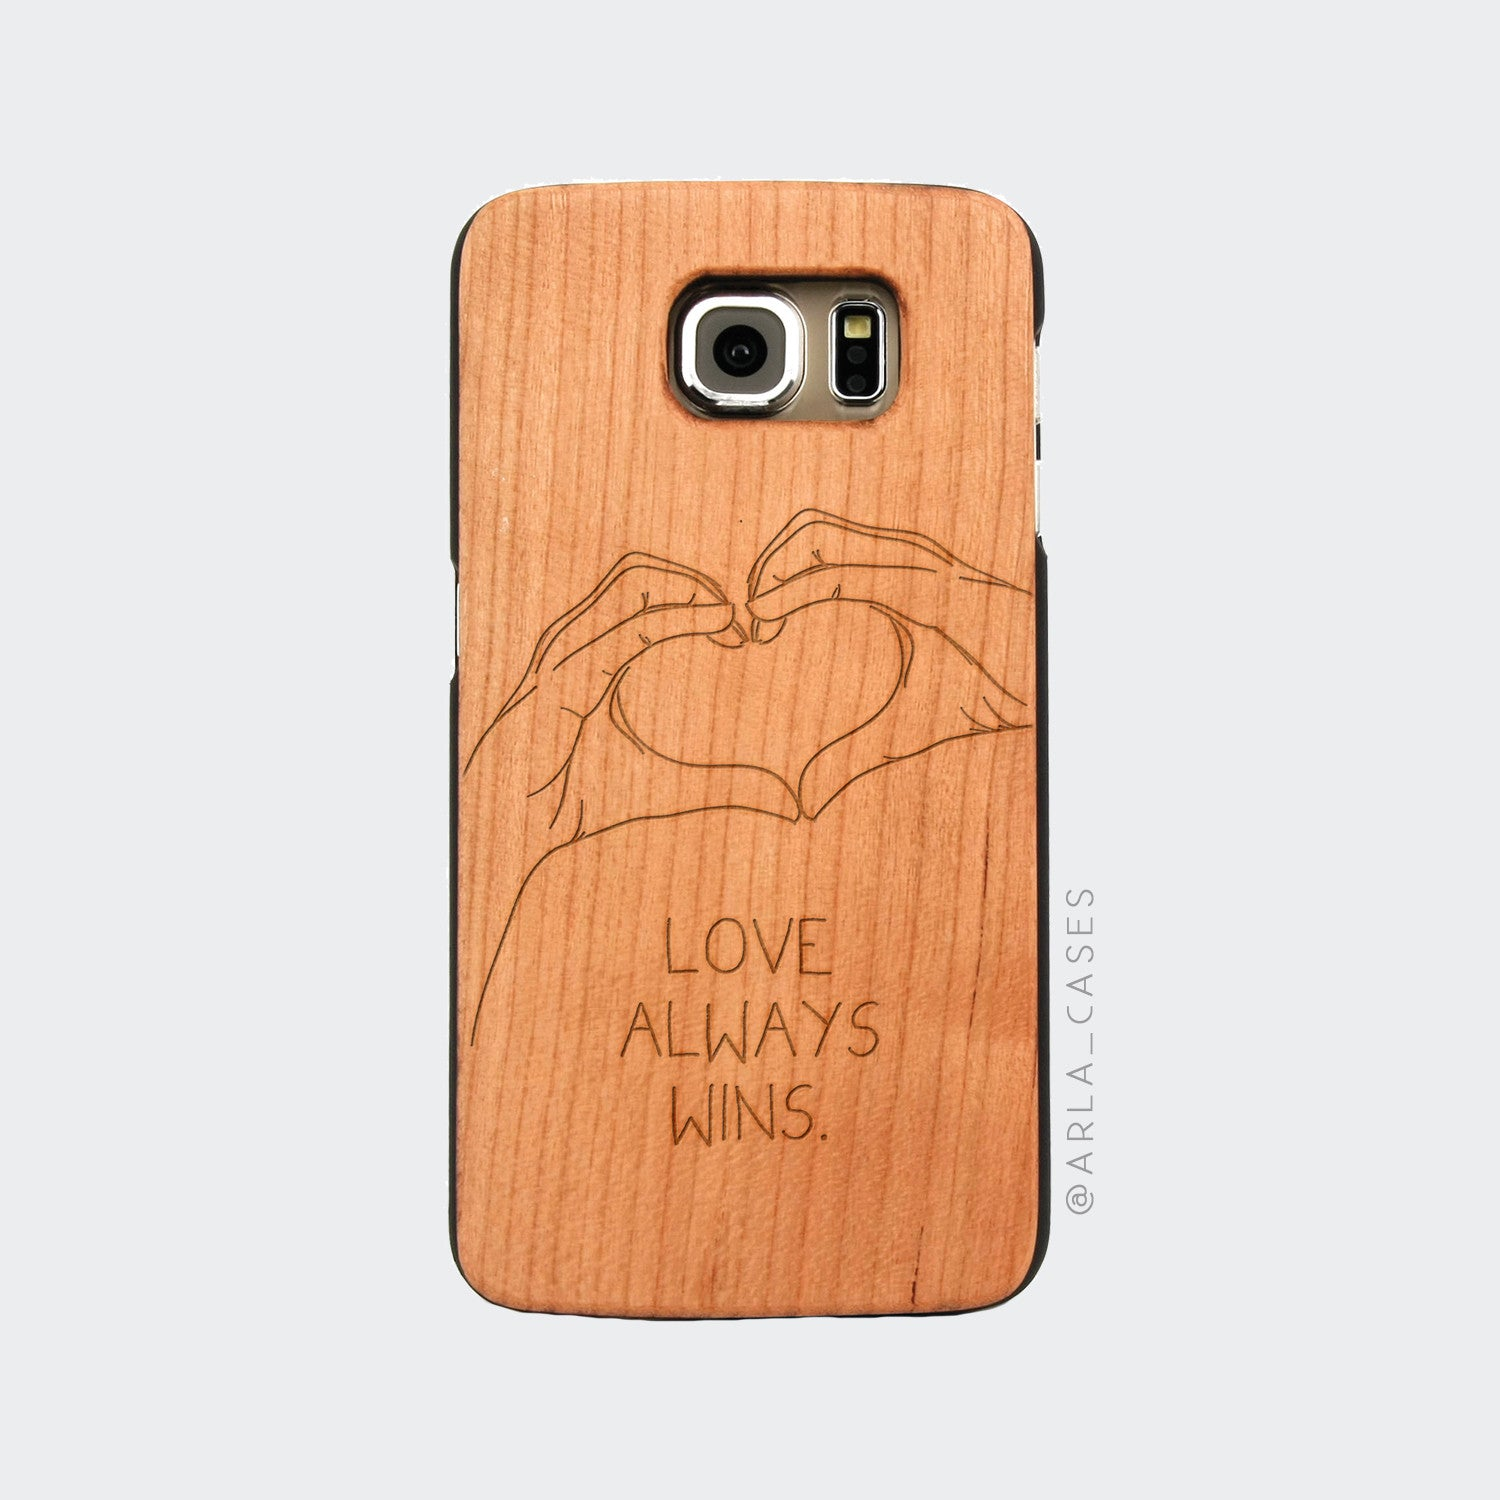 Love Always Wins Engraved on Wood Galaxy Case